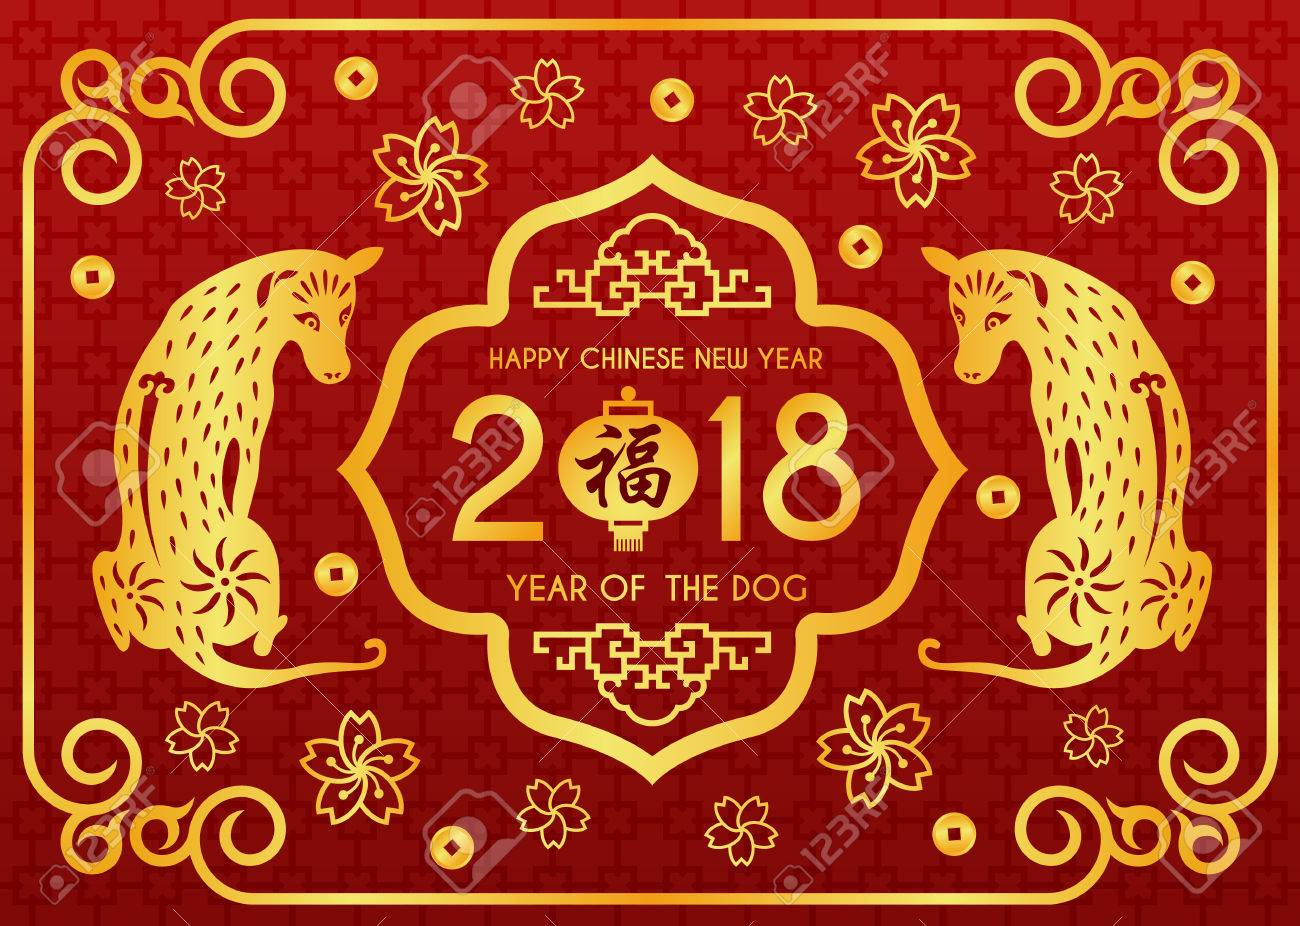 Happy chinese new year 2018 card with chinese word mean blessing happy chinese new year 2018 card with chinese word mean blessing in lanterns and twin gold kristyandbryce Choice Image